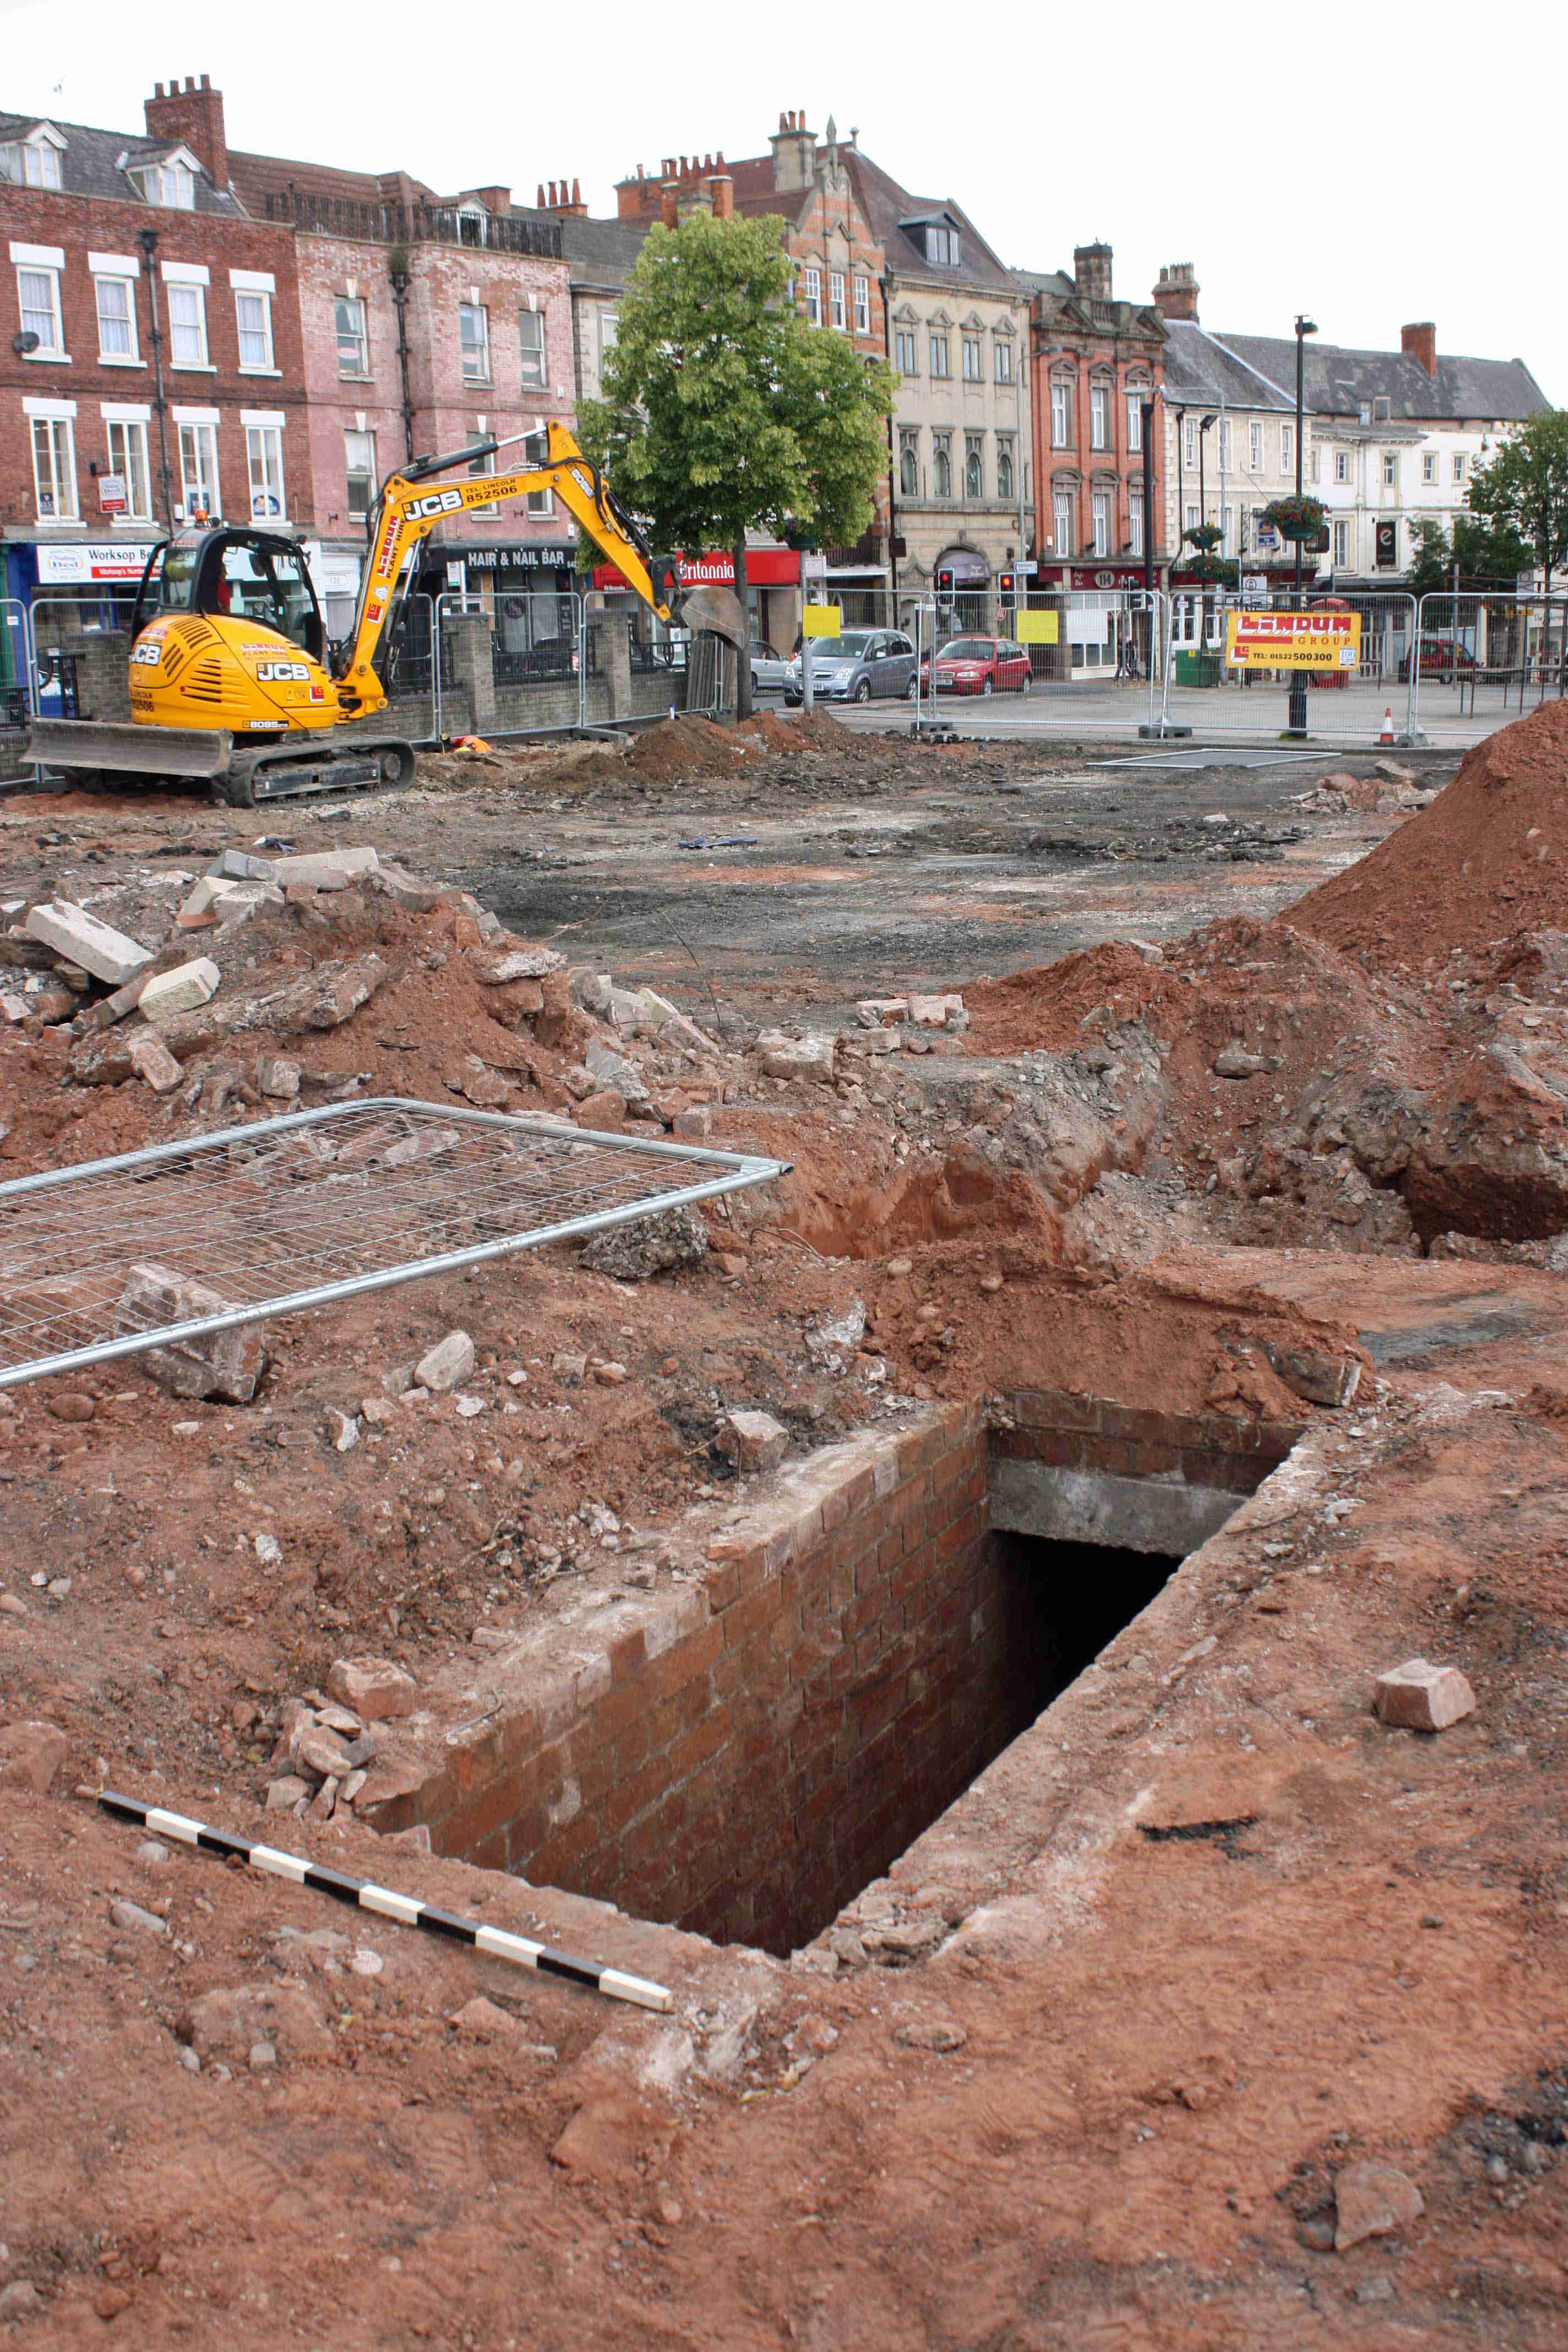 A photo of a building site in a town square. In the foreground, a hole in the ground leads to a buried, brick structure.